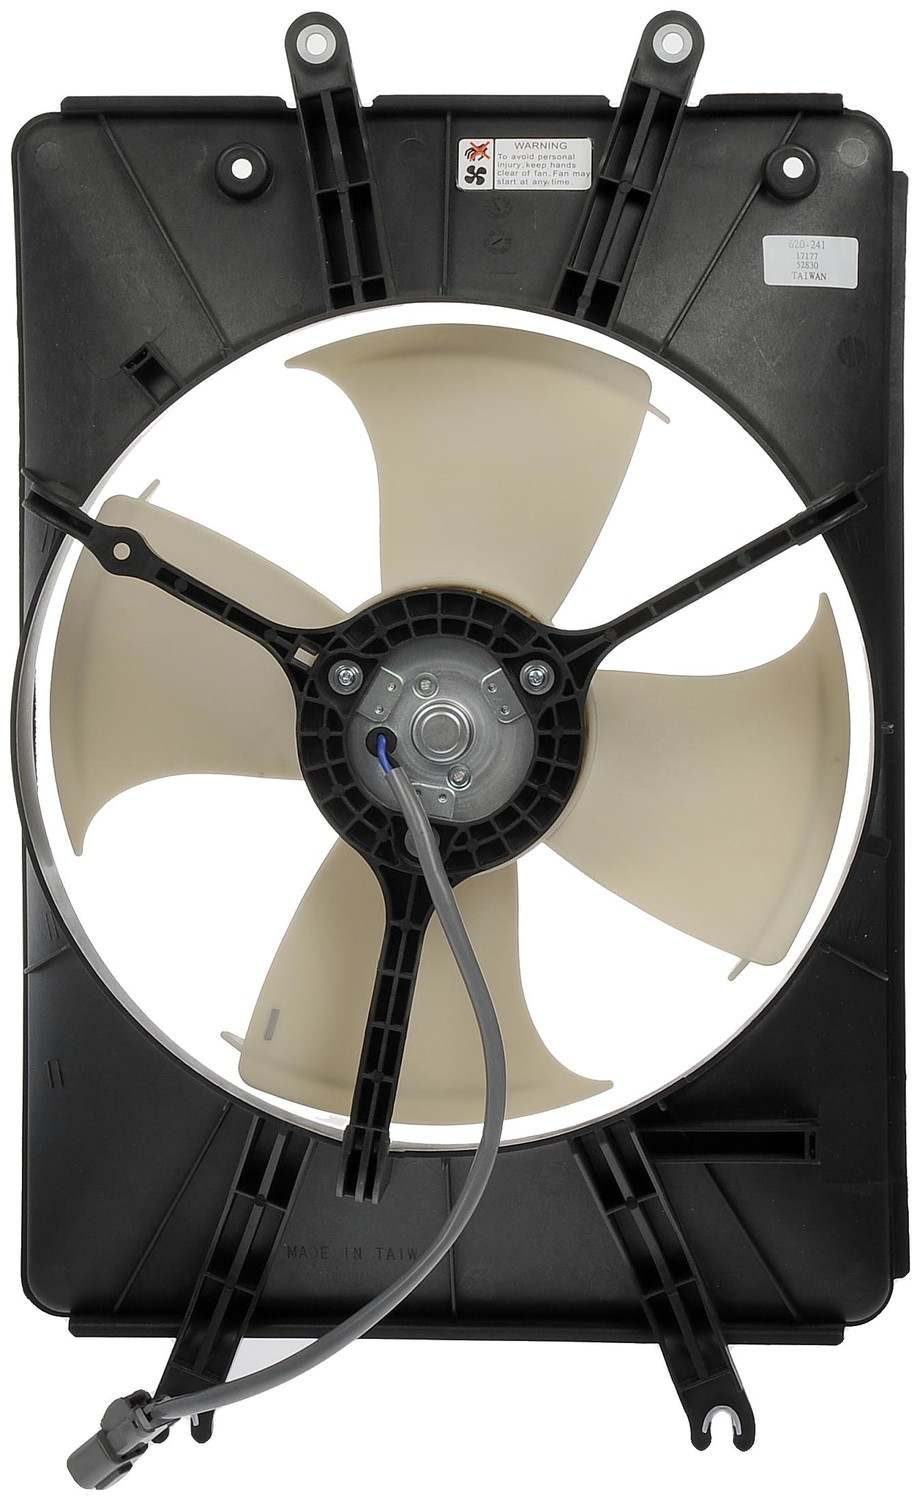 DORMAN OE SOLUTIONS - A/C Condenser Fan Assembly - DRE 620-241